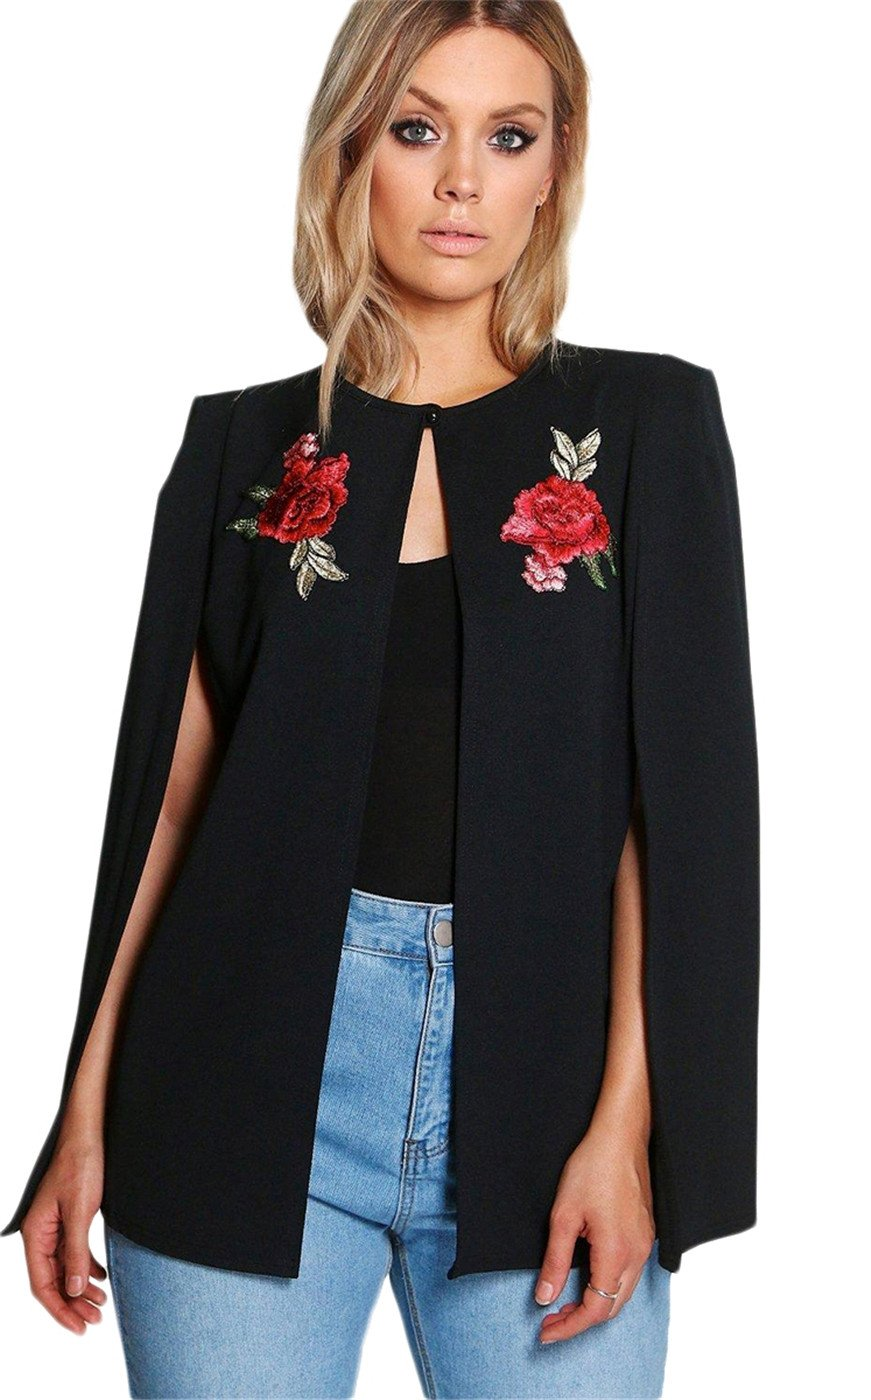 Arctic Cubic Sexy Floral Embroidery Embroidered Cloak Poncho Cape Style Split Slit Long Sleeve Blazer Jacket Suit Top Black US 20